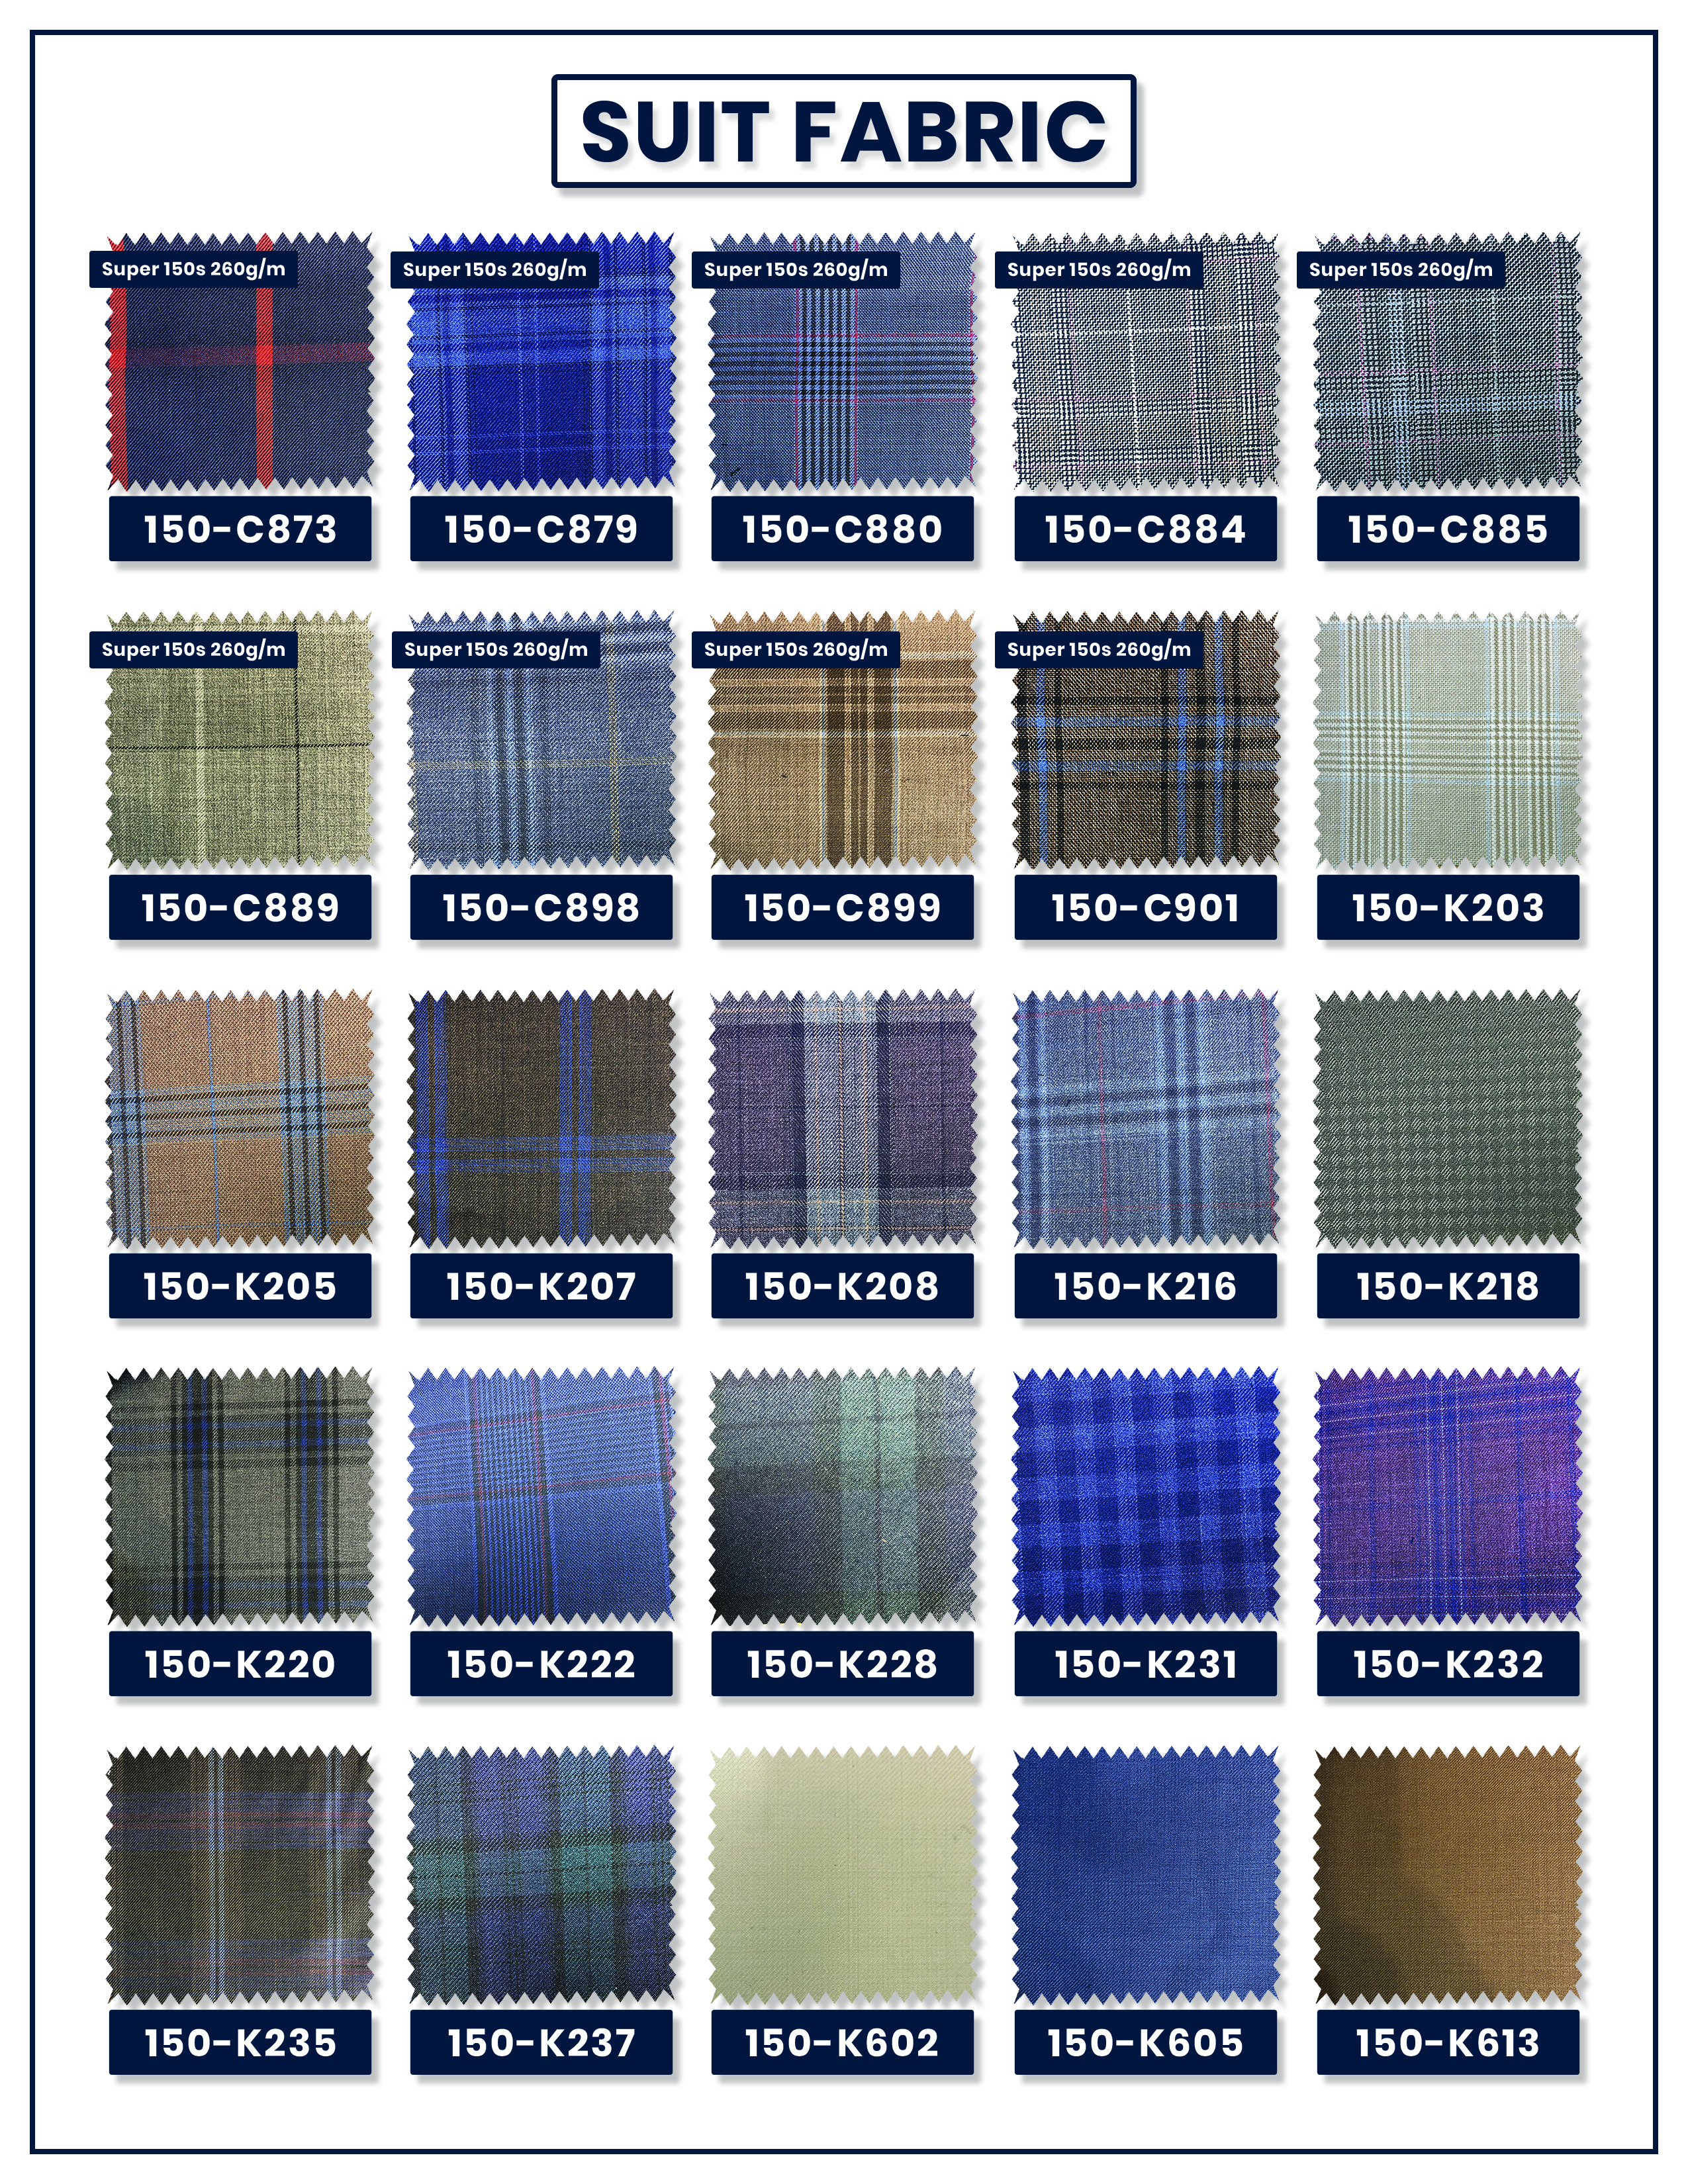 suit-fabric-page-3-cmyk-.jpg